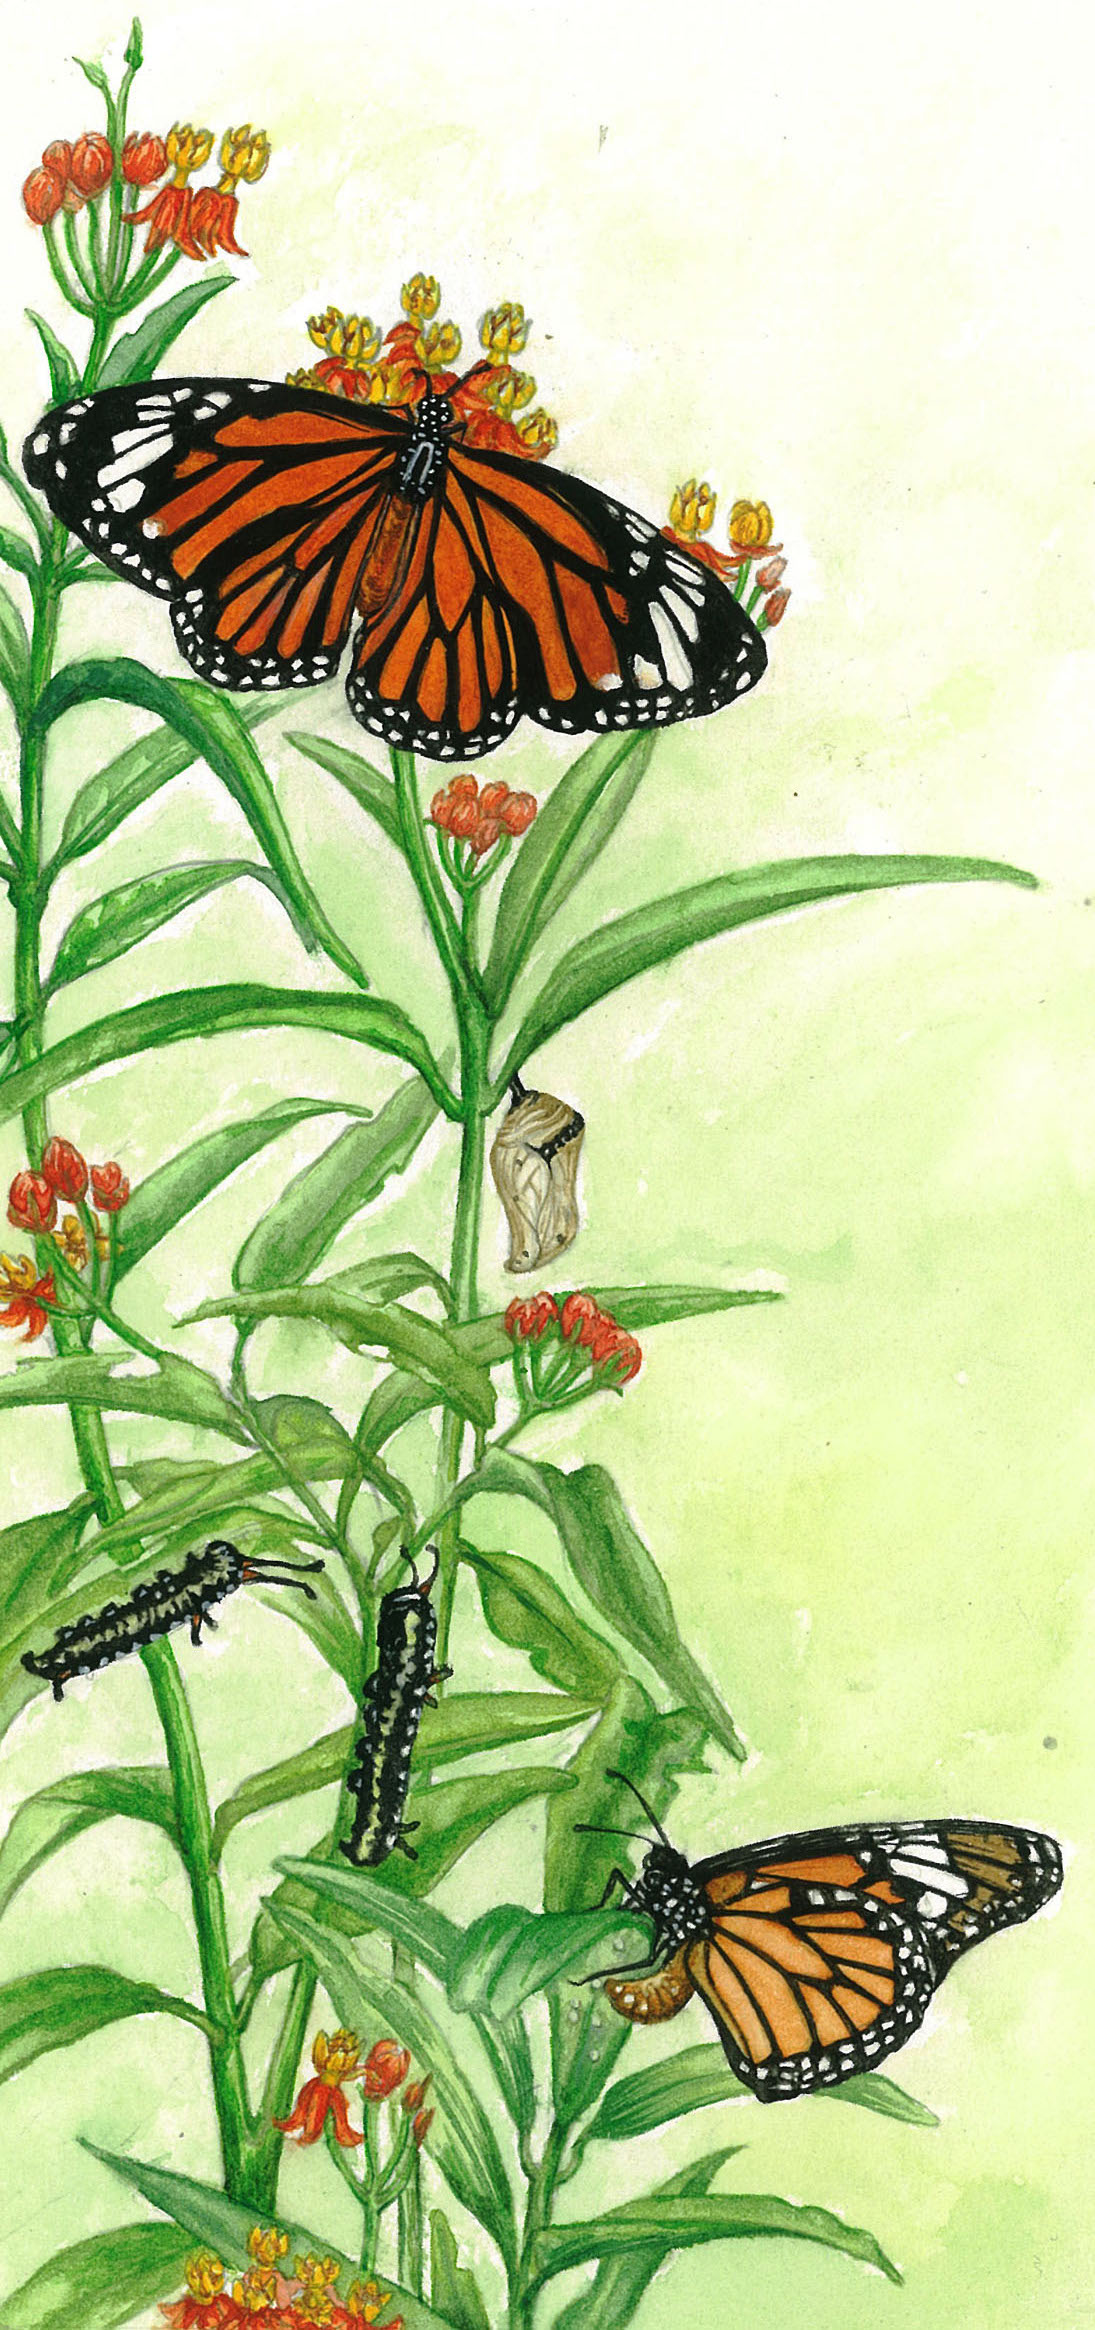 STRIPED TIGER BUTTERFLY LIFE CYCLE